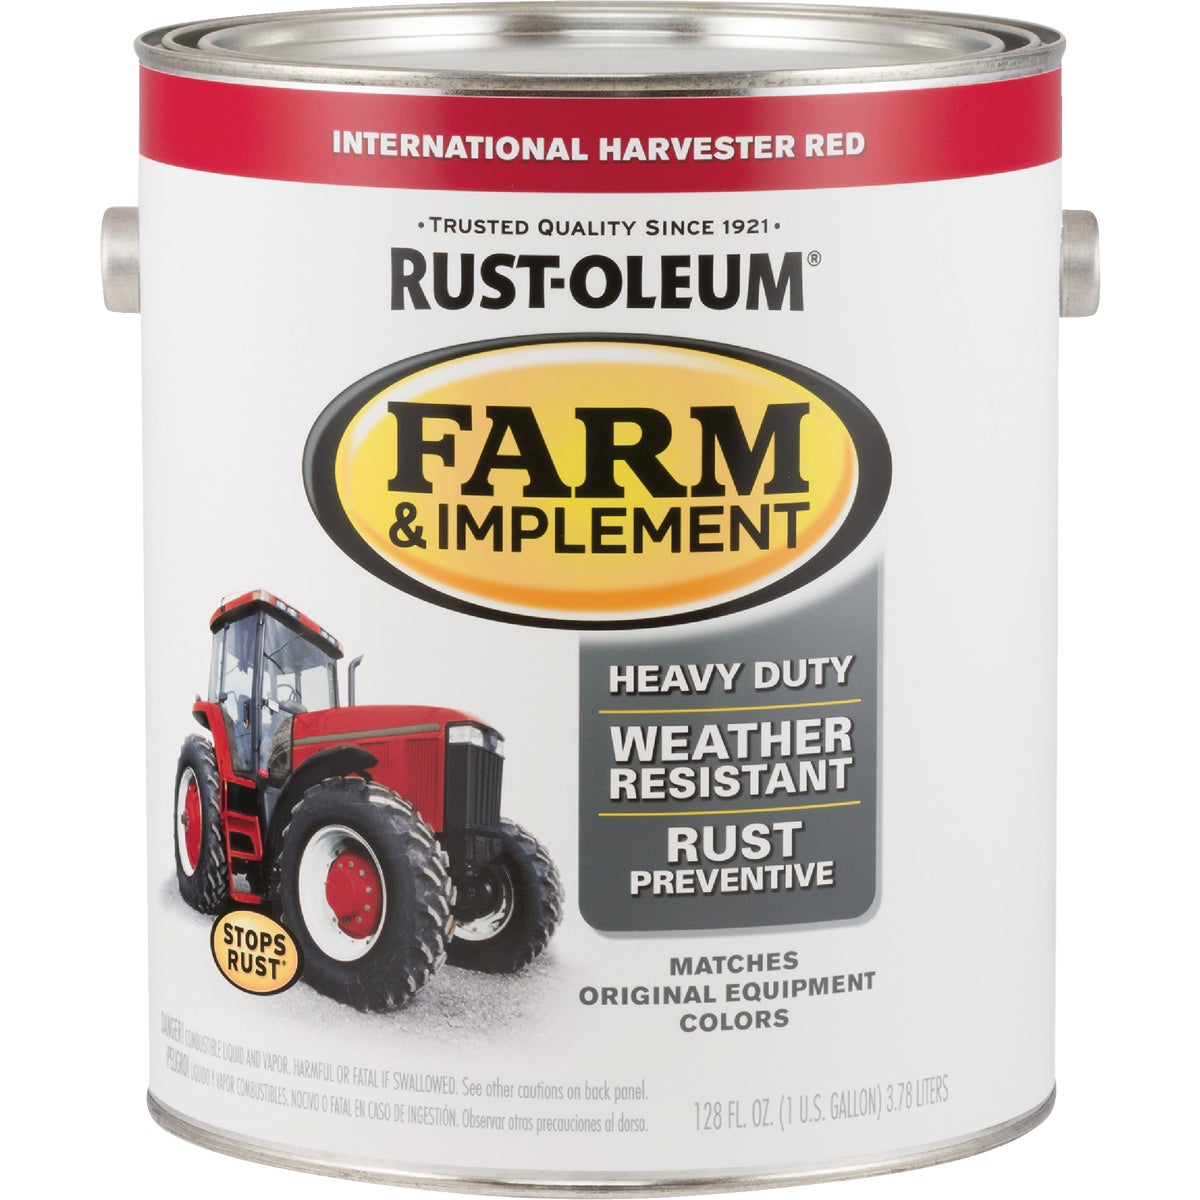 INTL RED IMPLEMNT ENAMEL - 7466-402 by Rustoleum